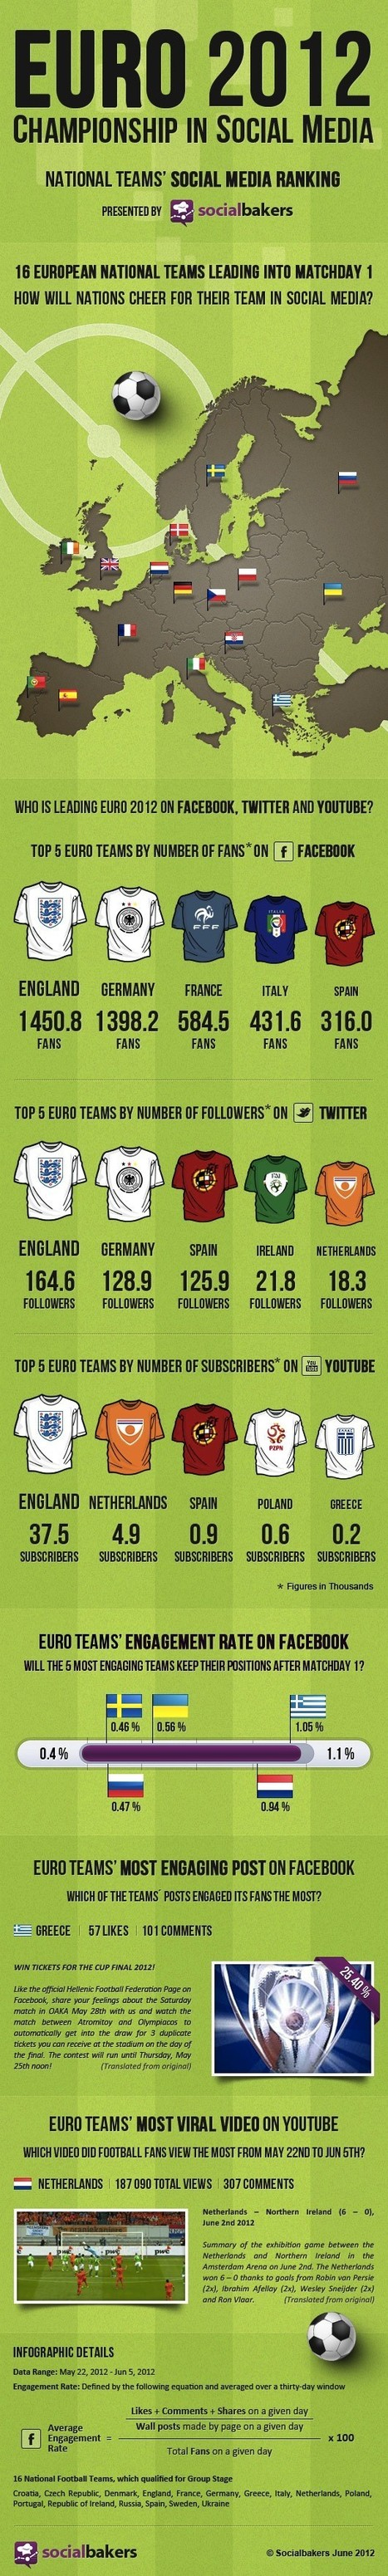 Euro 2012 National Soccer Teams Compete For Championship Victory In Social Media. [Infographic] #FlowConnection | ten Hagen on Social Media | Scoop.it